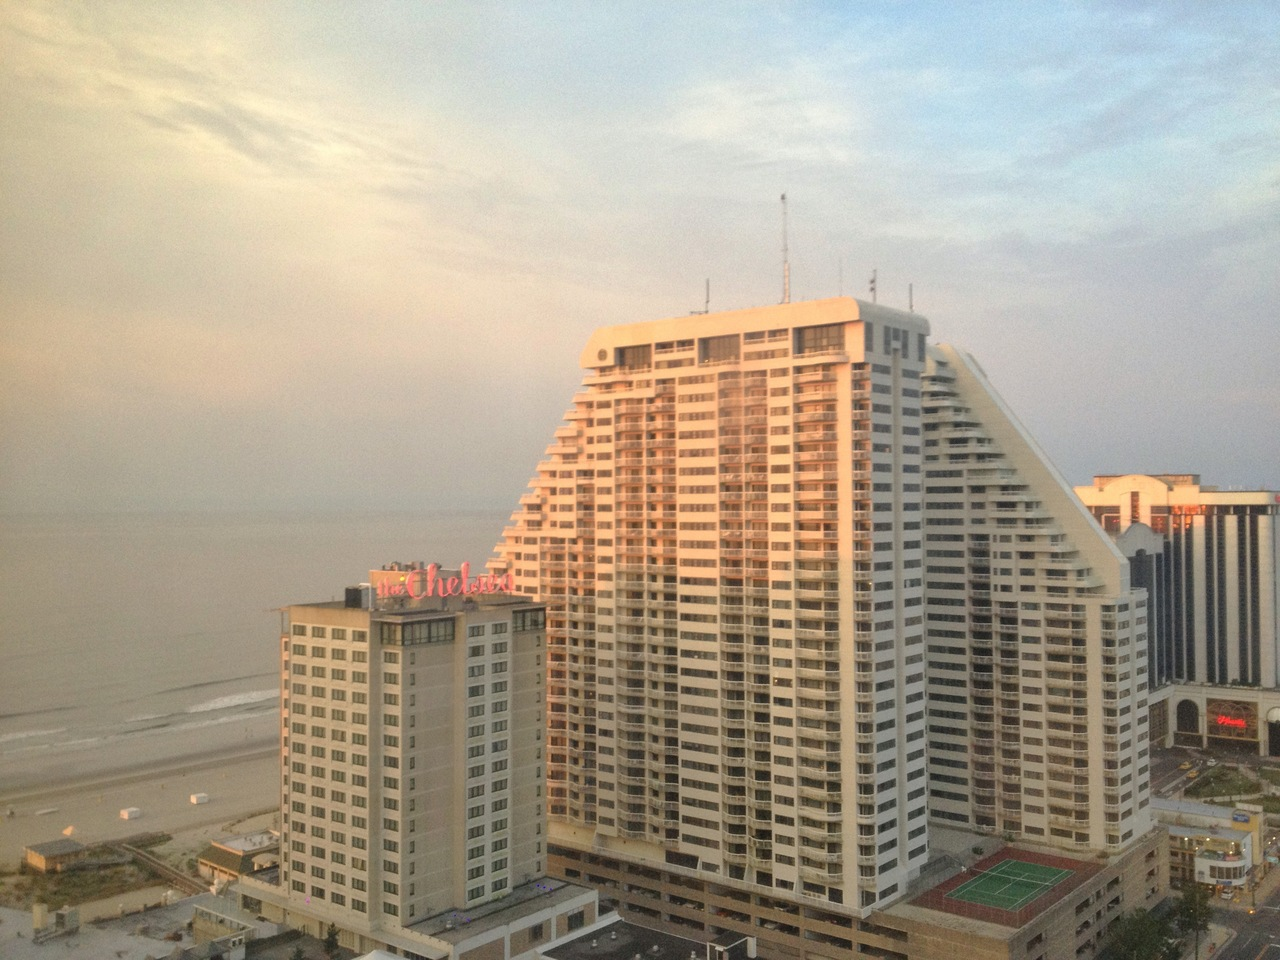 A view from Tropicana'a West Tower in Atlantic City